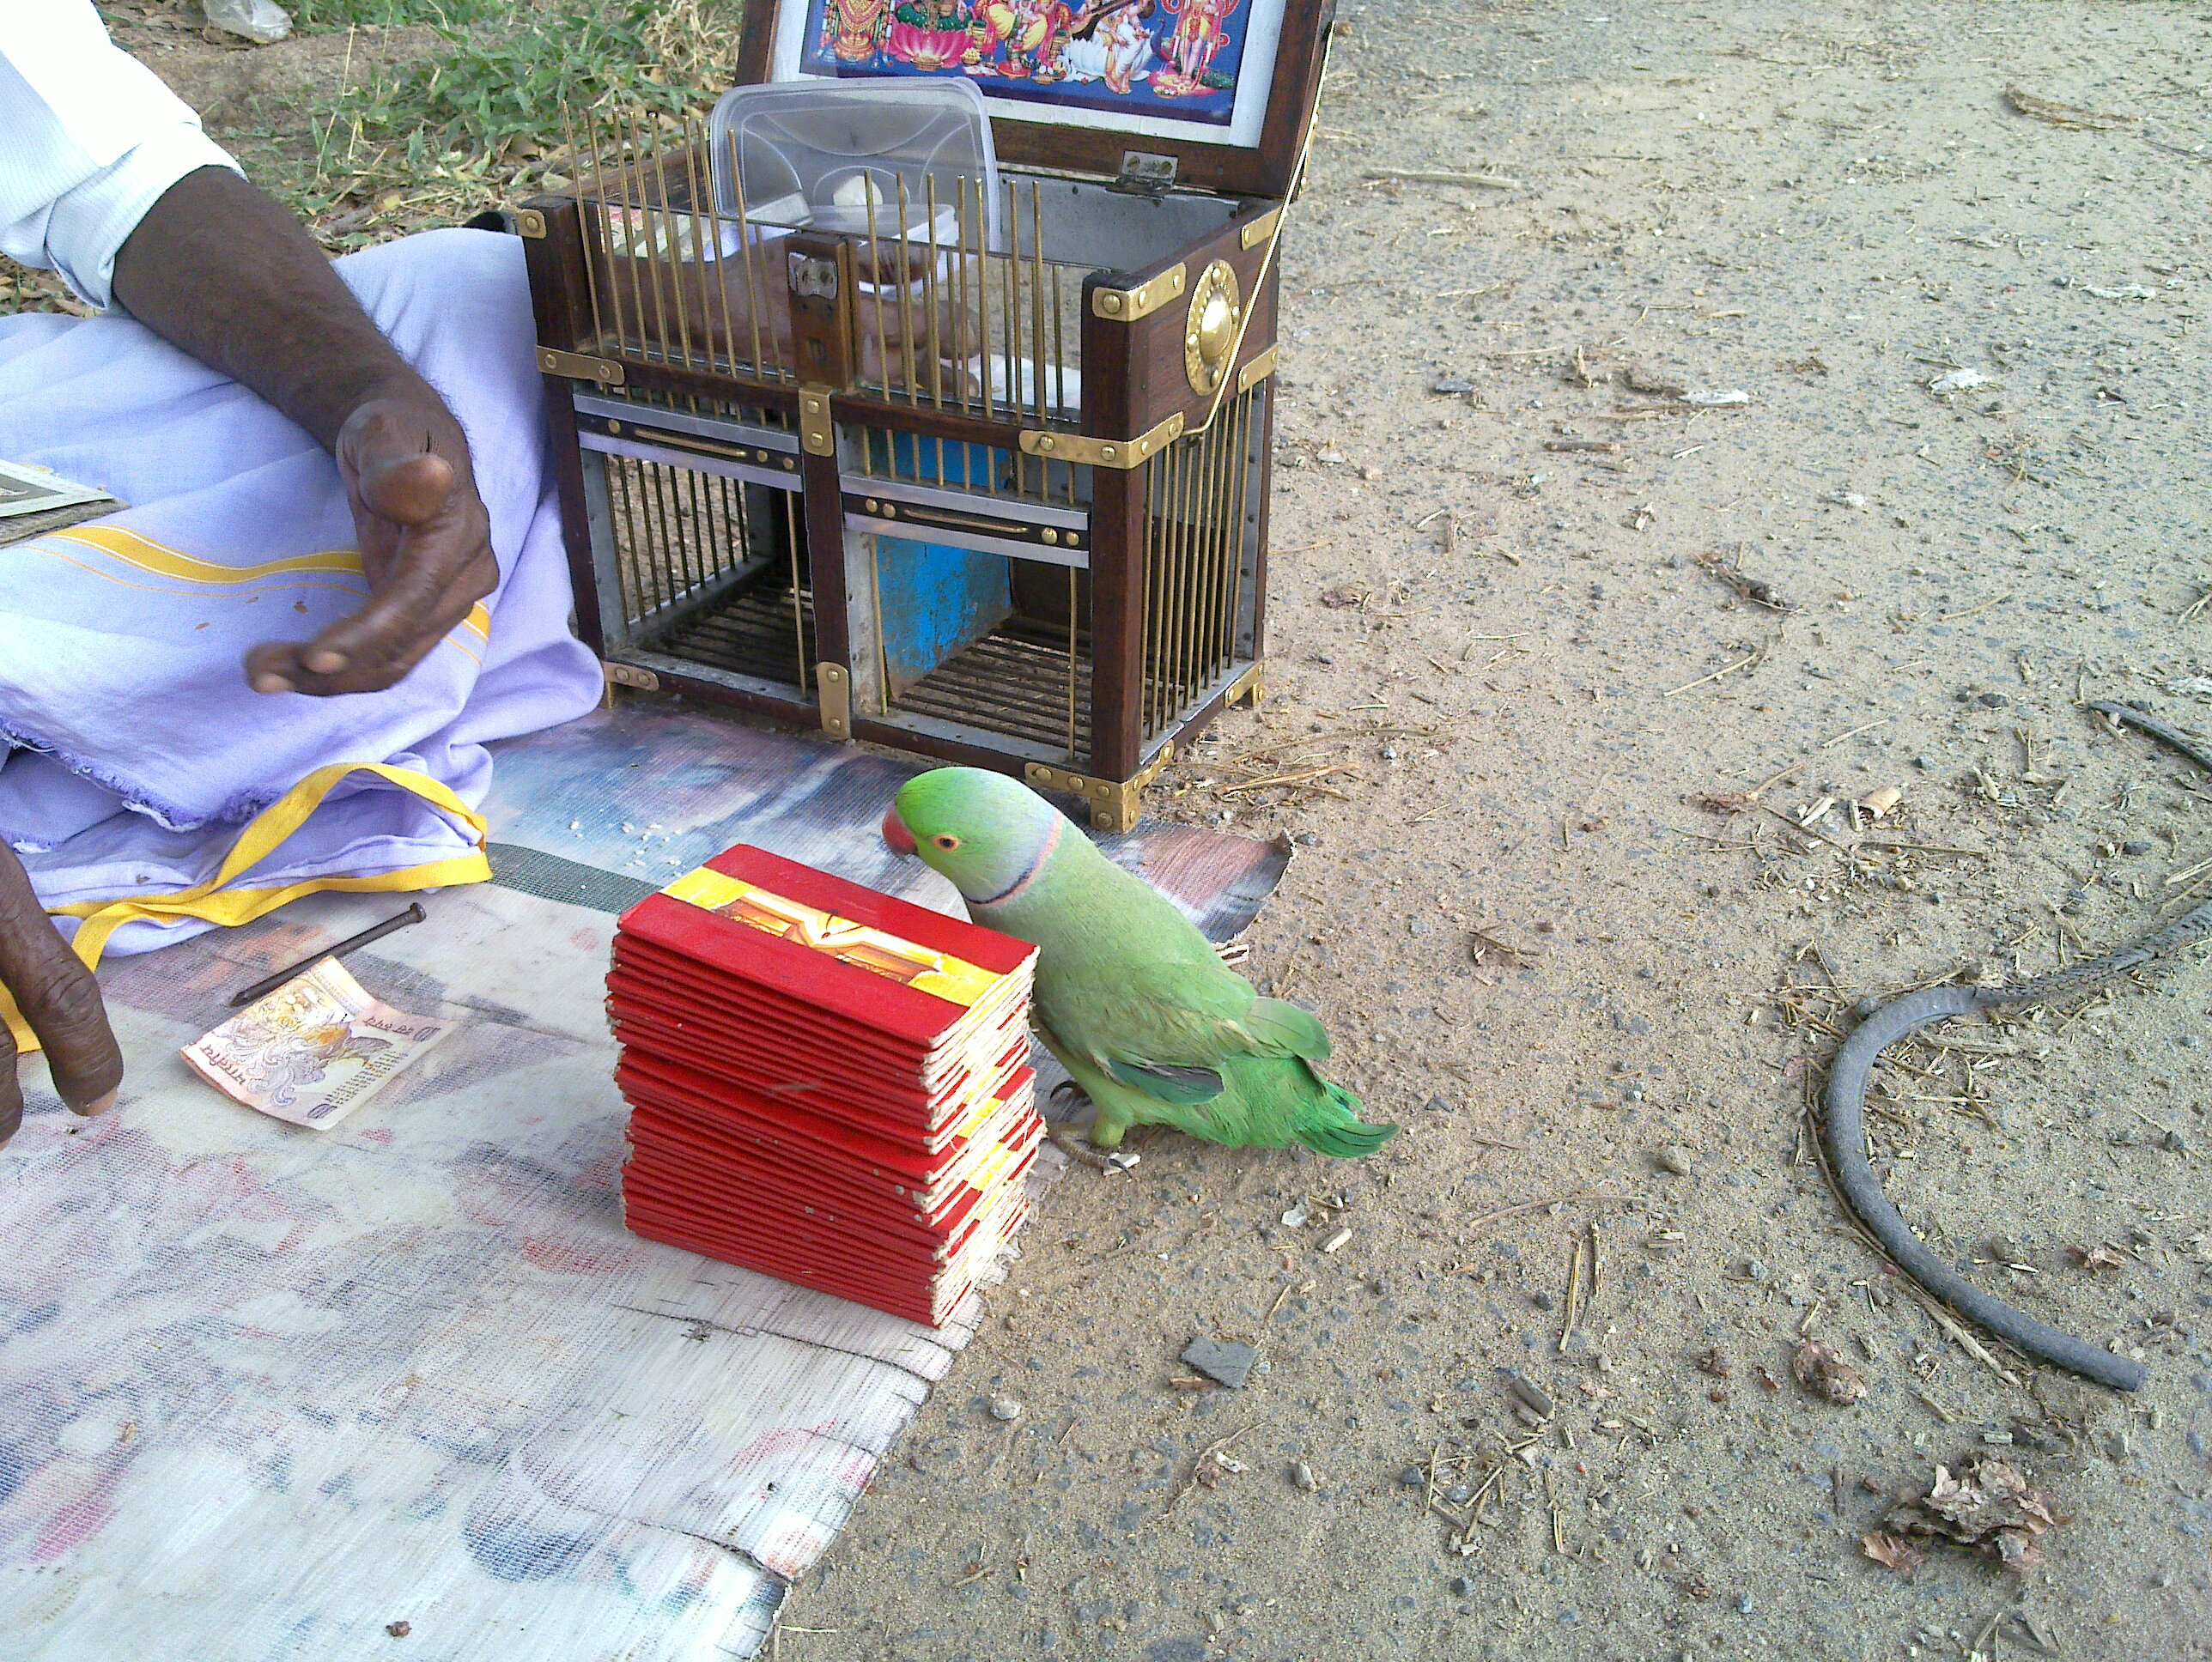 parrot astrology cards